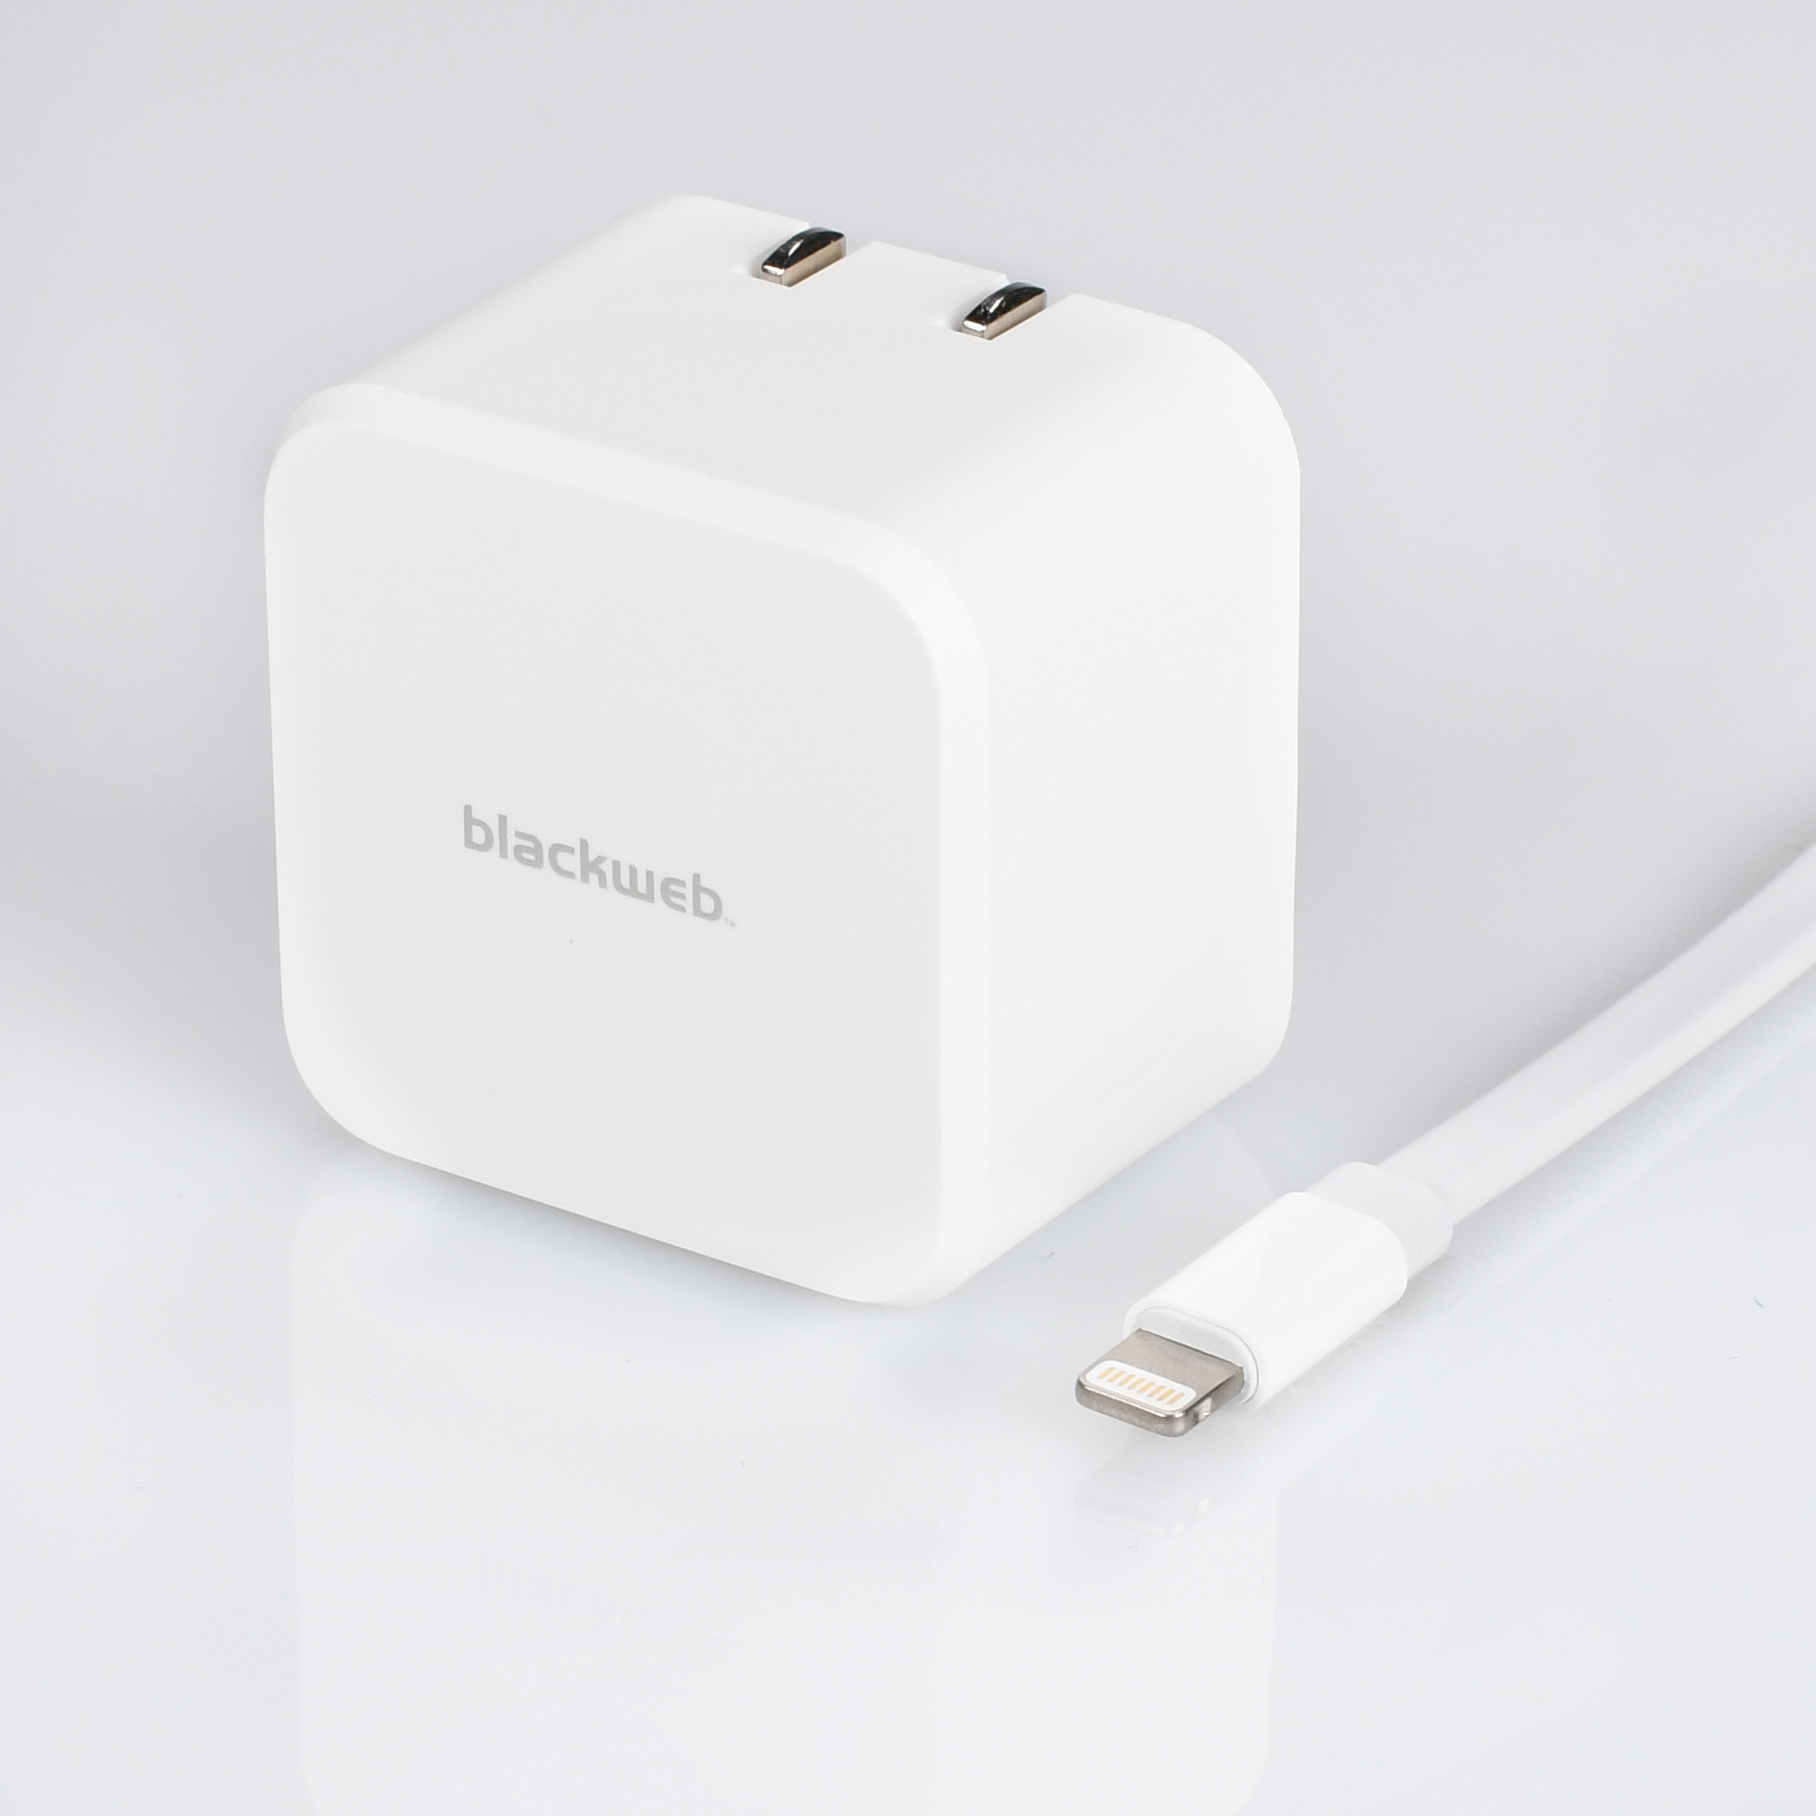 Blackweb Dual-Port Wall Charger with Flat Cable with Lightning Connector  3.1 Amp & Blackweb Dual-Port Wall Charger with Flat Cable with Lightning ...